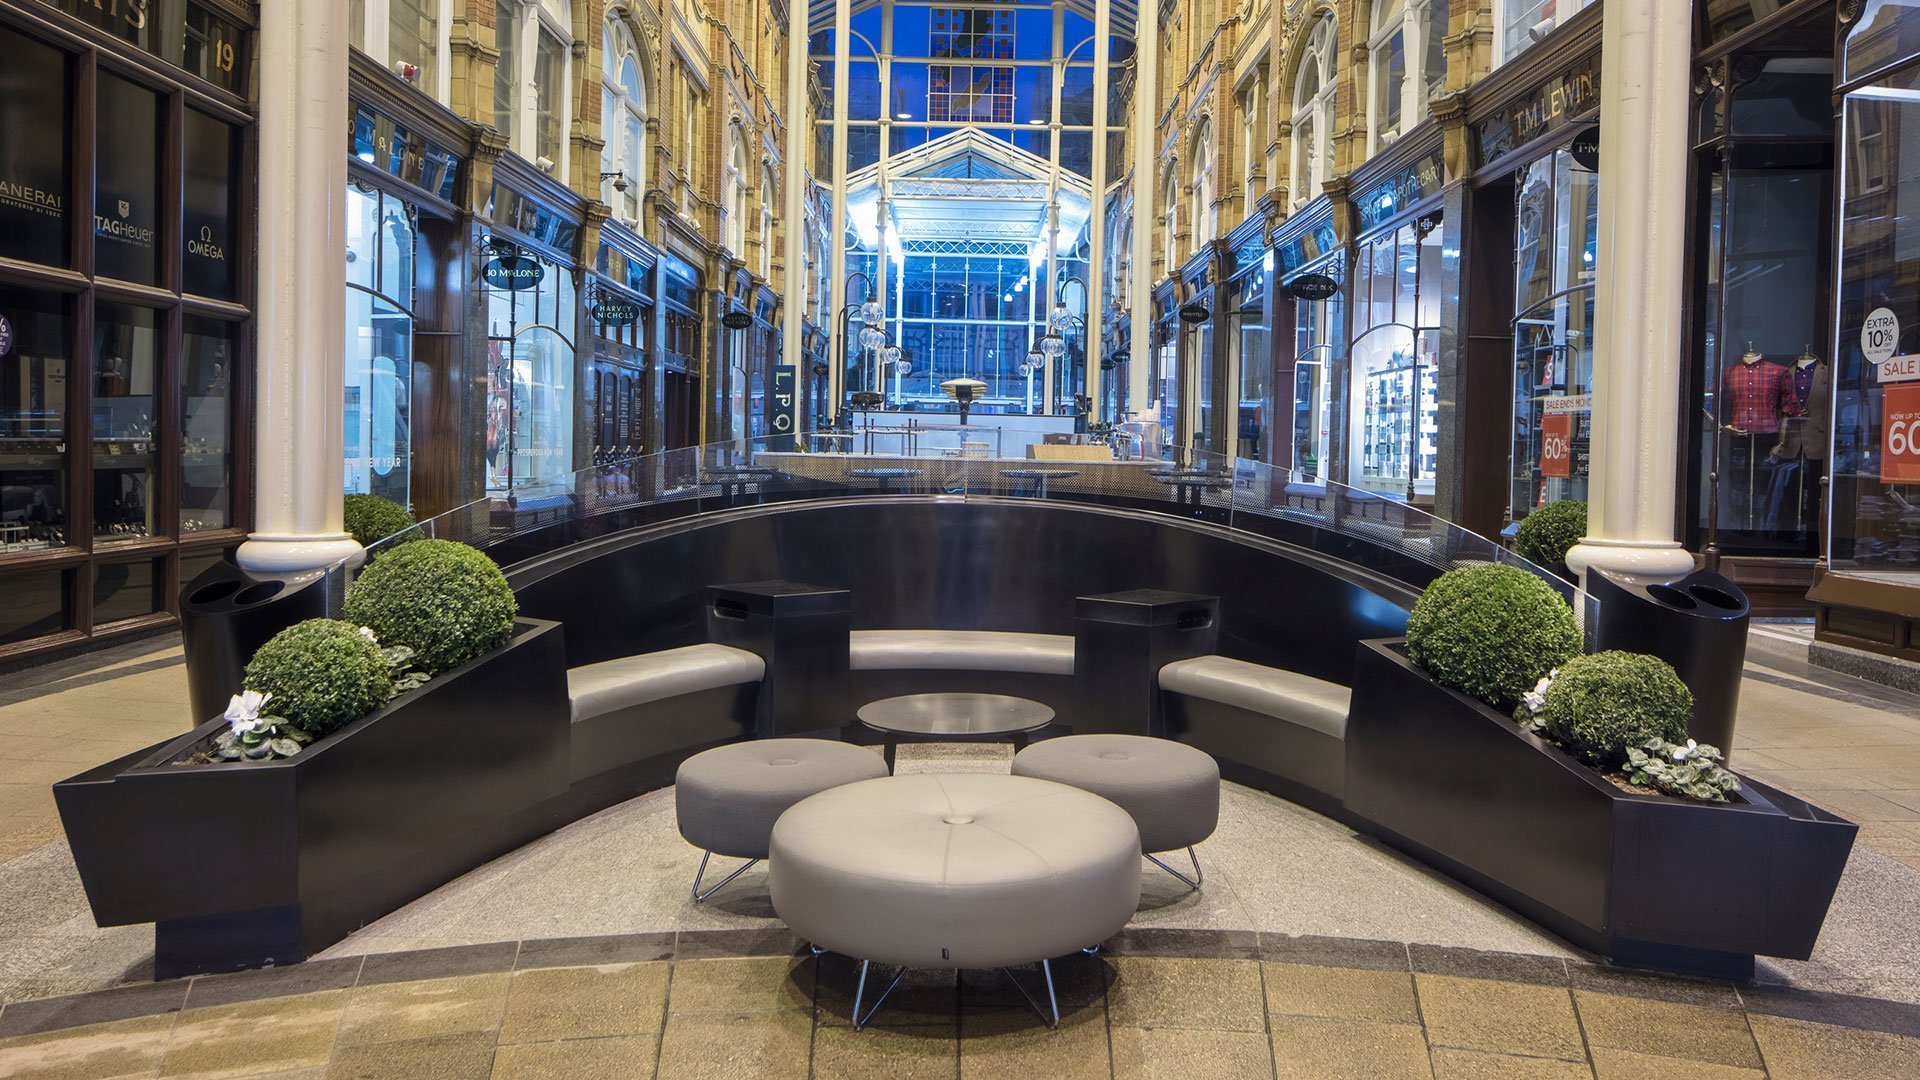 Corian seating area in Victoria Gate & Victoria Quarter, Leeds